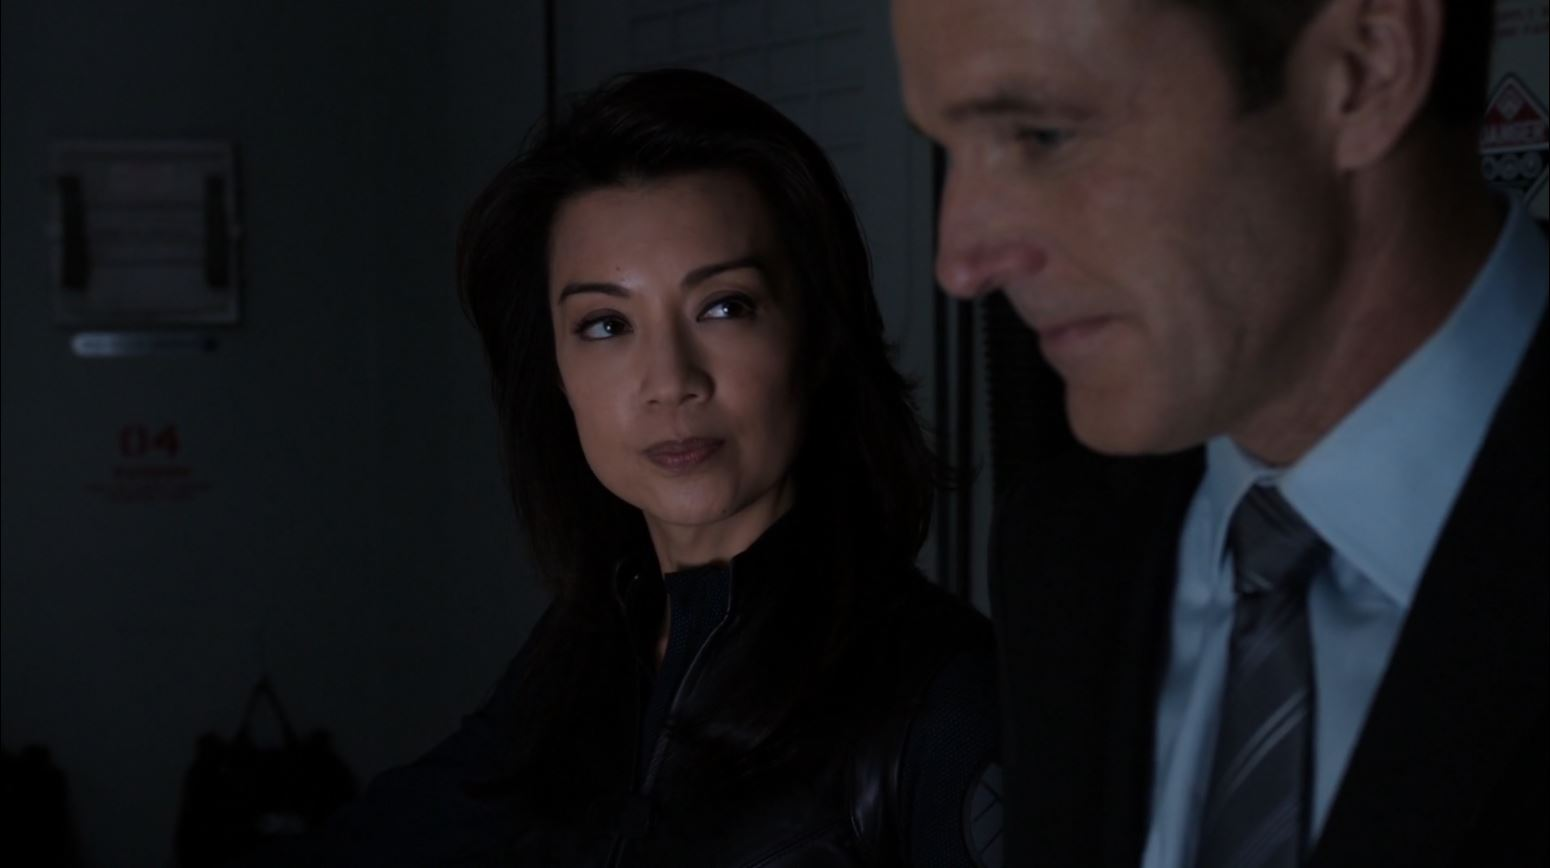 Agents of S.H.I.E.L.D S1Ep15 'Yes Men' - Ming Na Wen as Melinda May questions Coulson about Tahiti